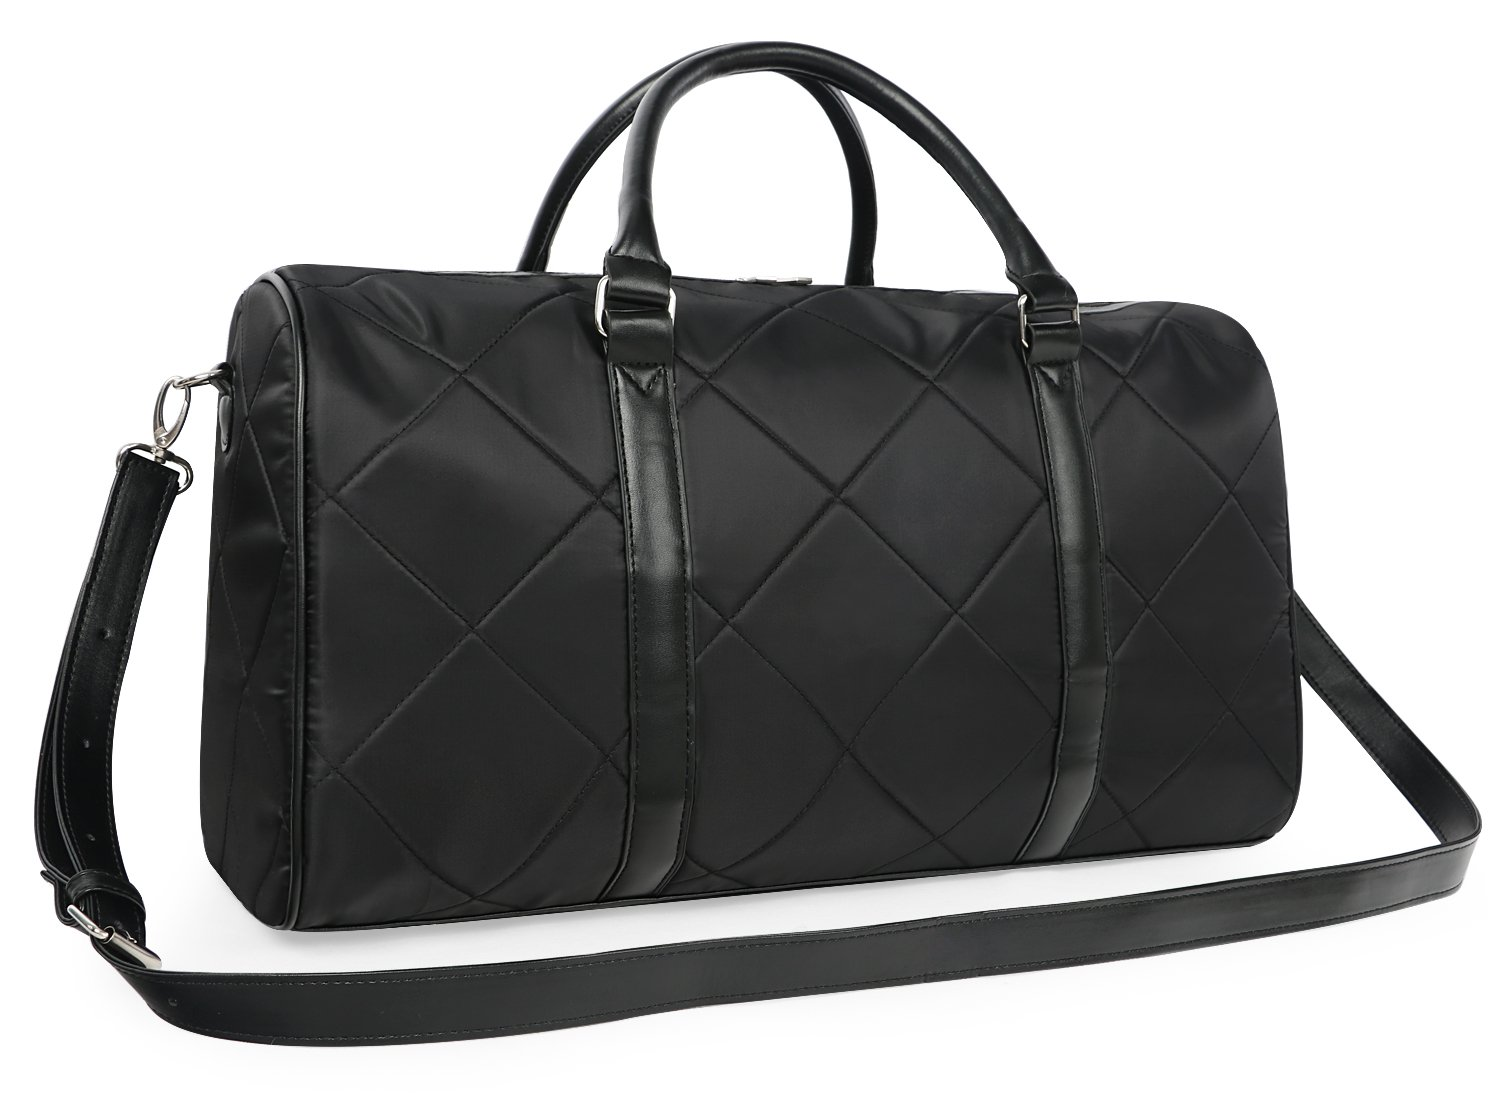 Oflamn Quilted Duffle Bag Weekender Overnight Travel Carry On Bag Black (Black) OFDU302BLA